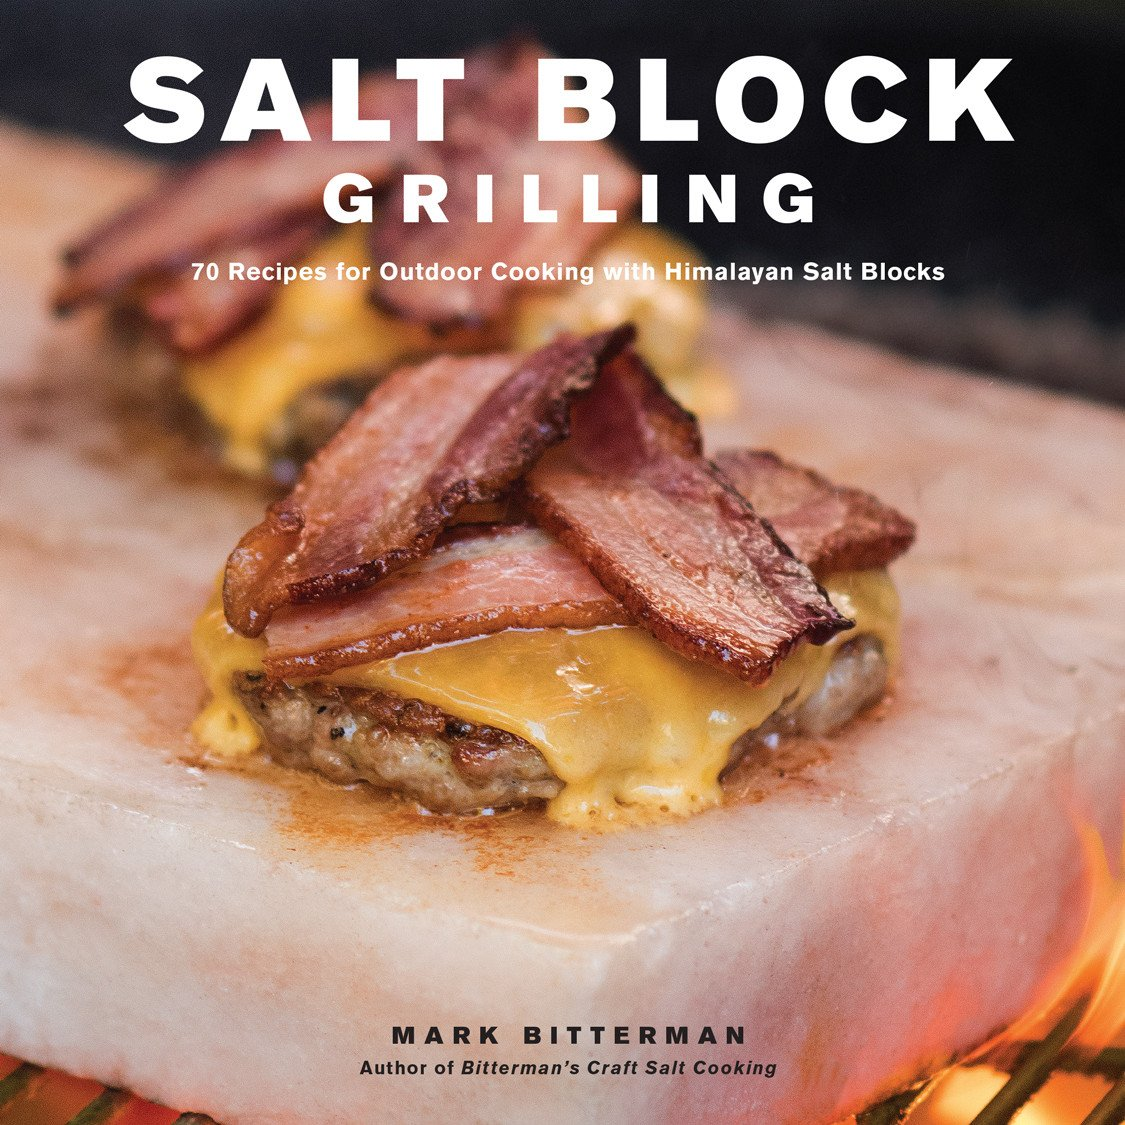 Salt Block Grilling by Mark Bitterman